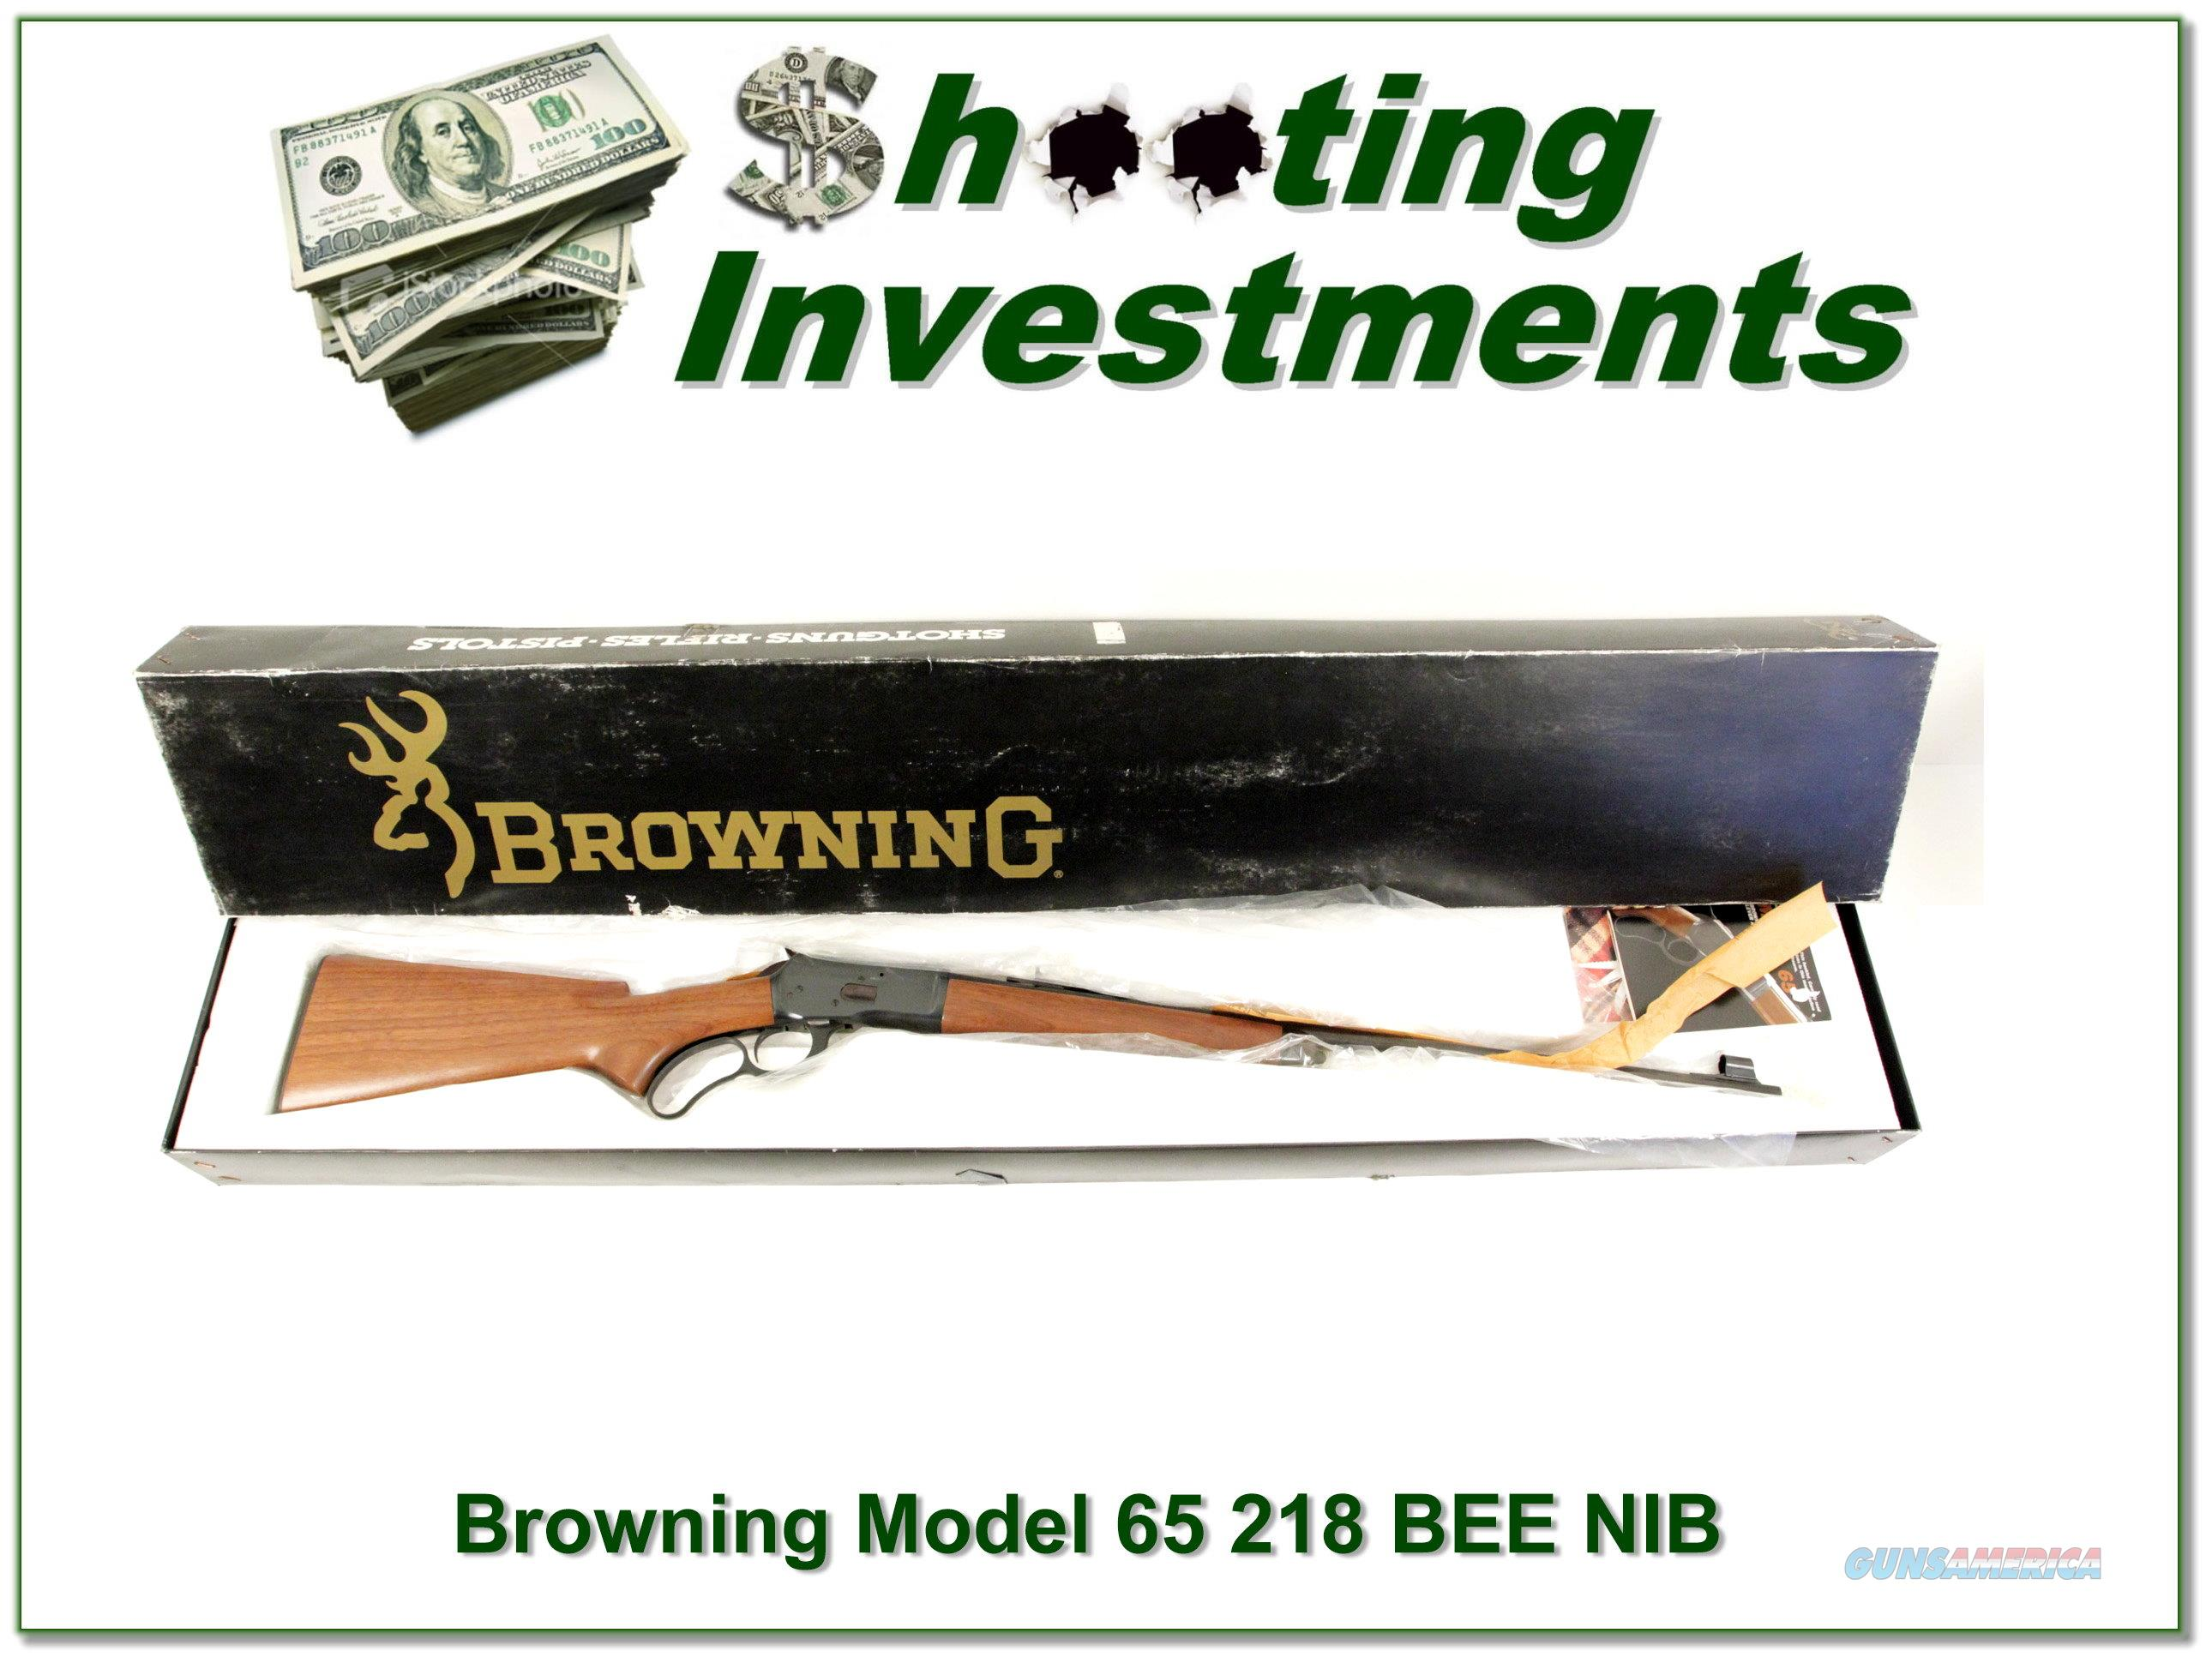 Browning Model 65 new and unfired in Box 218 Bee!  Guns > Rifles > Browning Rifles > Lever Action